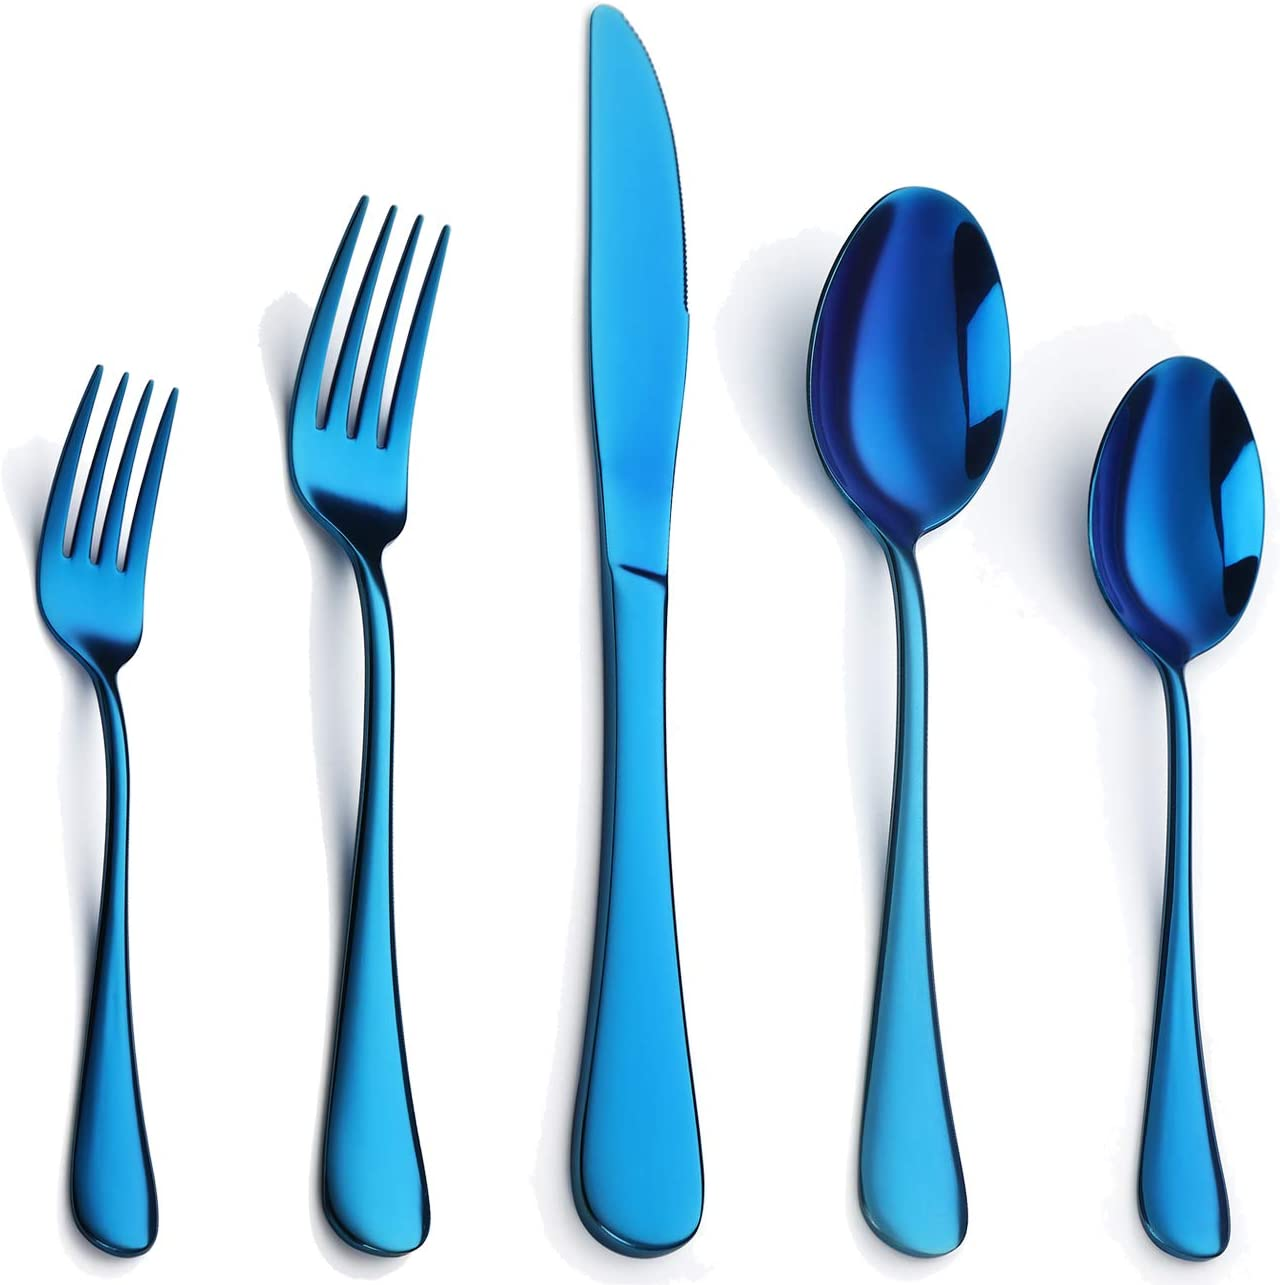 Blue Silverware Set 20-Piece, Stainless Steel Flatware Set for 4, Cutlery Utensils Include Knives/Forks/Spoons Service for 4, Mirror Polished, Dishwasher Safe